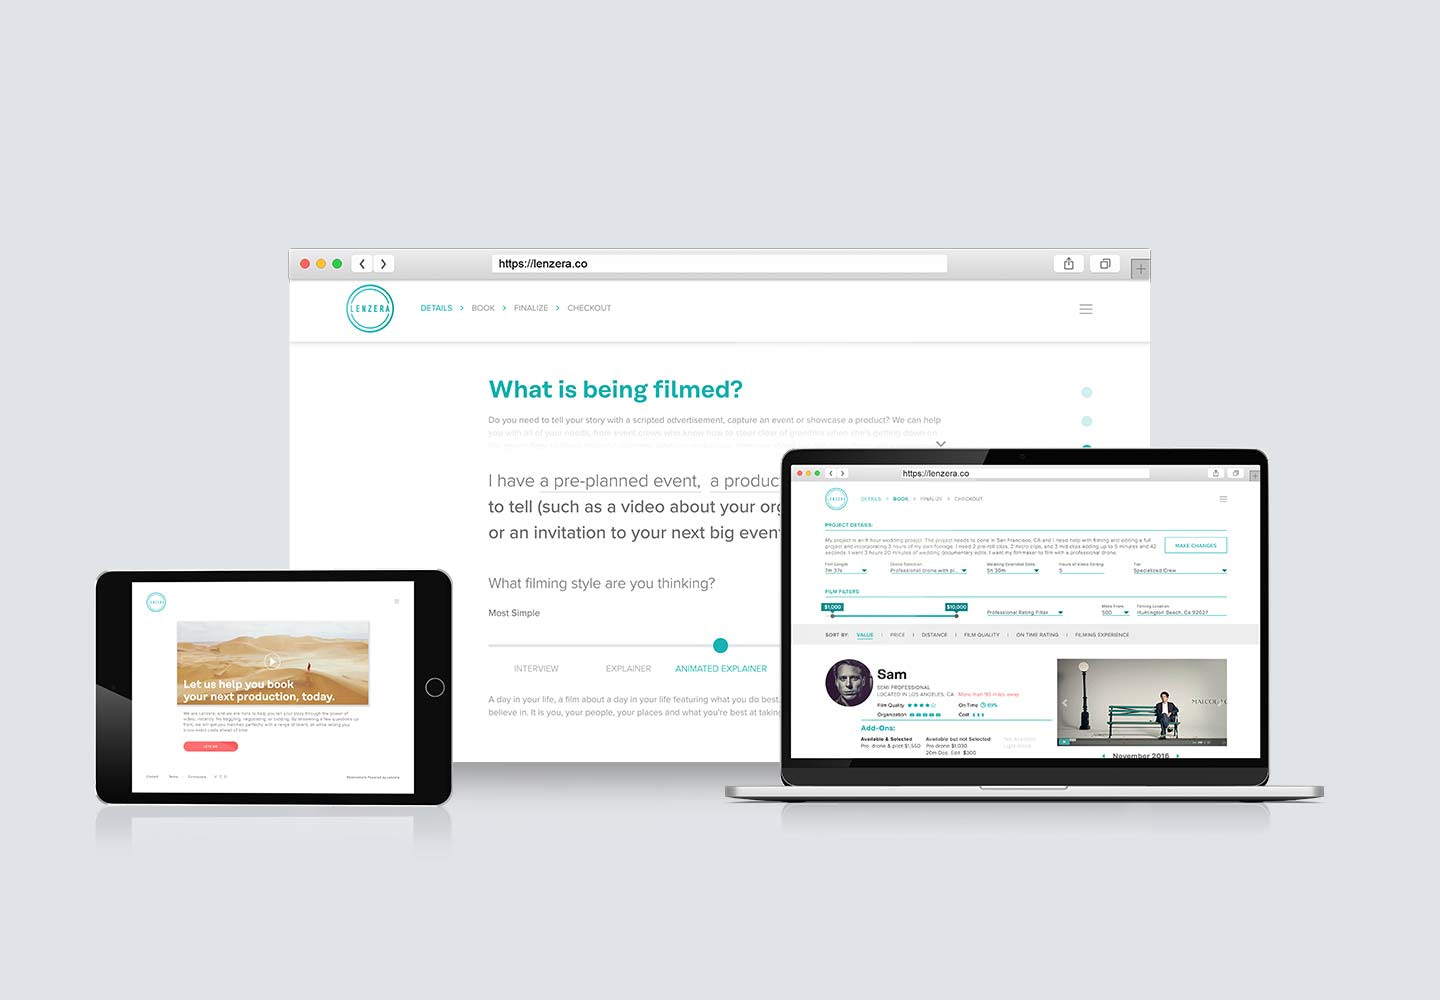 tepia co case study lenzera reservations app feature image